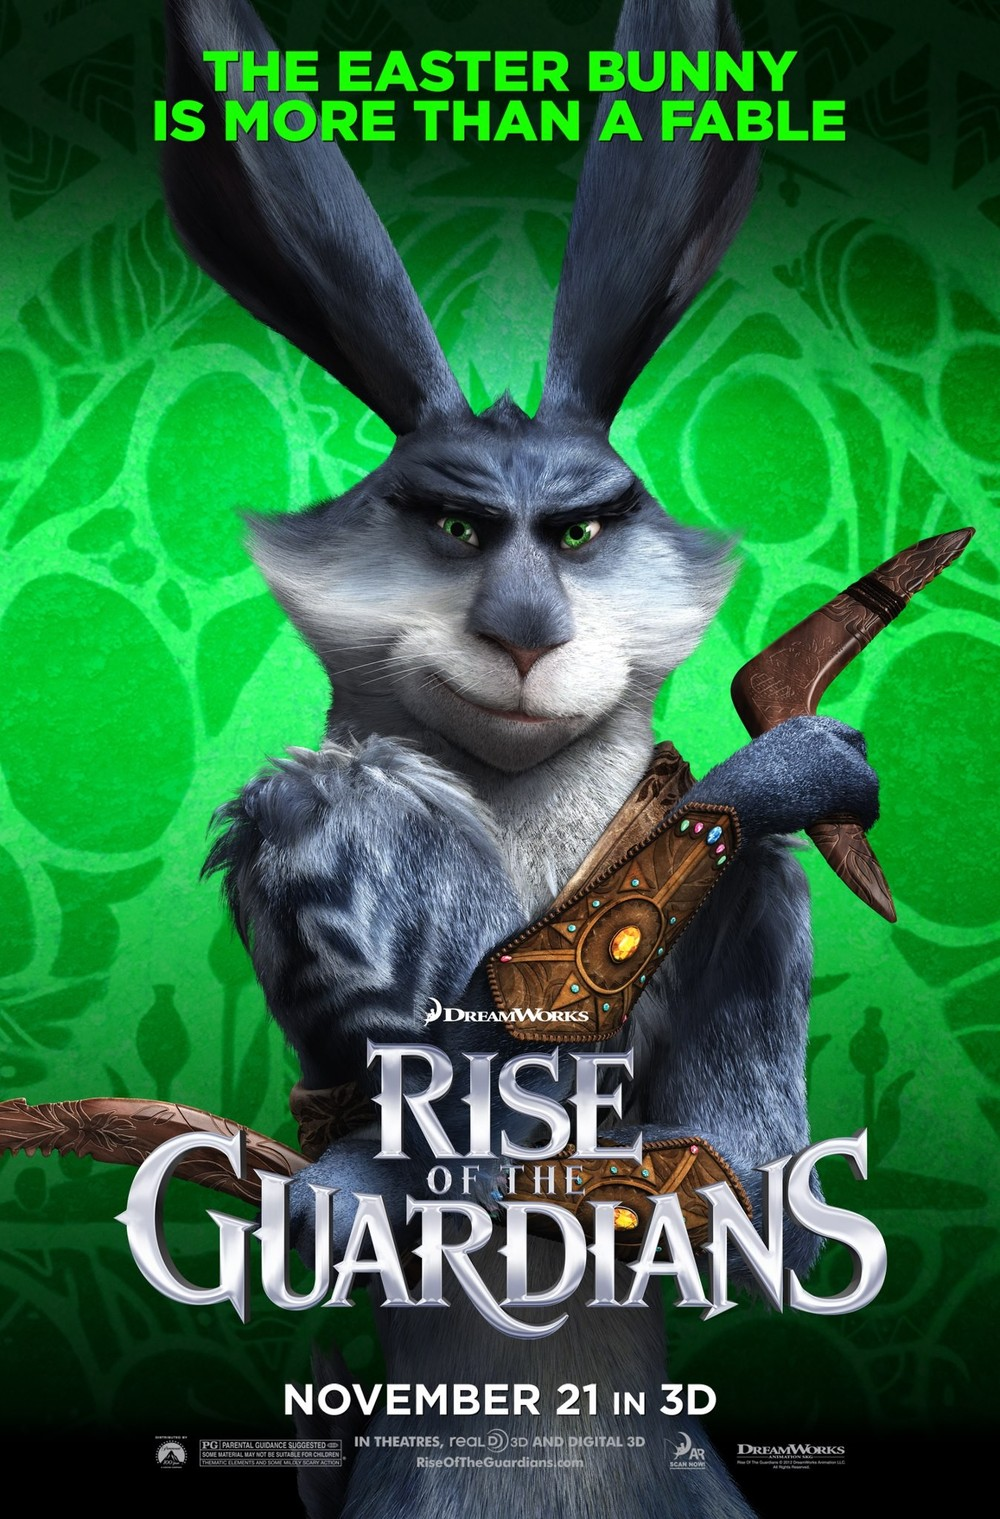 Rise of the guardians dvd release date redbox netflix - Pics of rise of the guardians ...